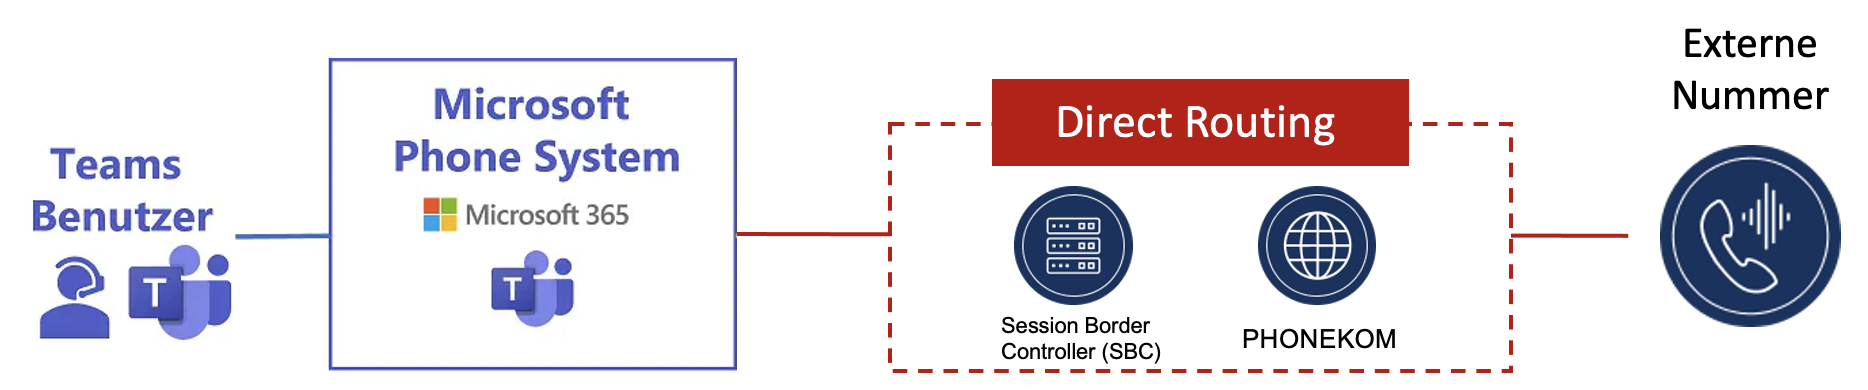 MS-Teams Direct Routing